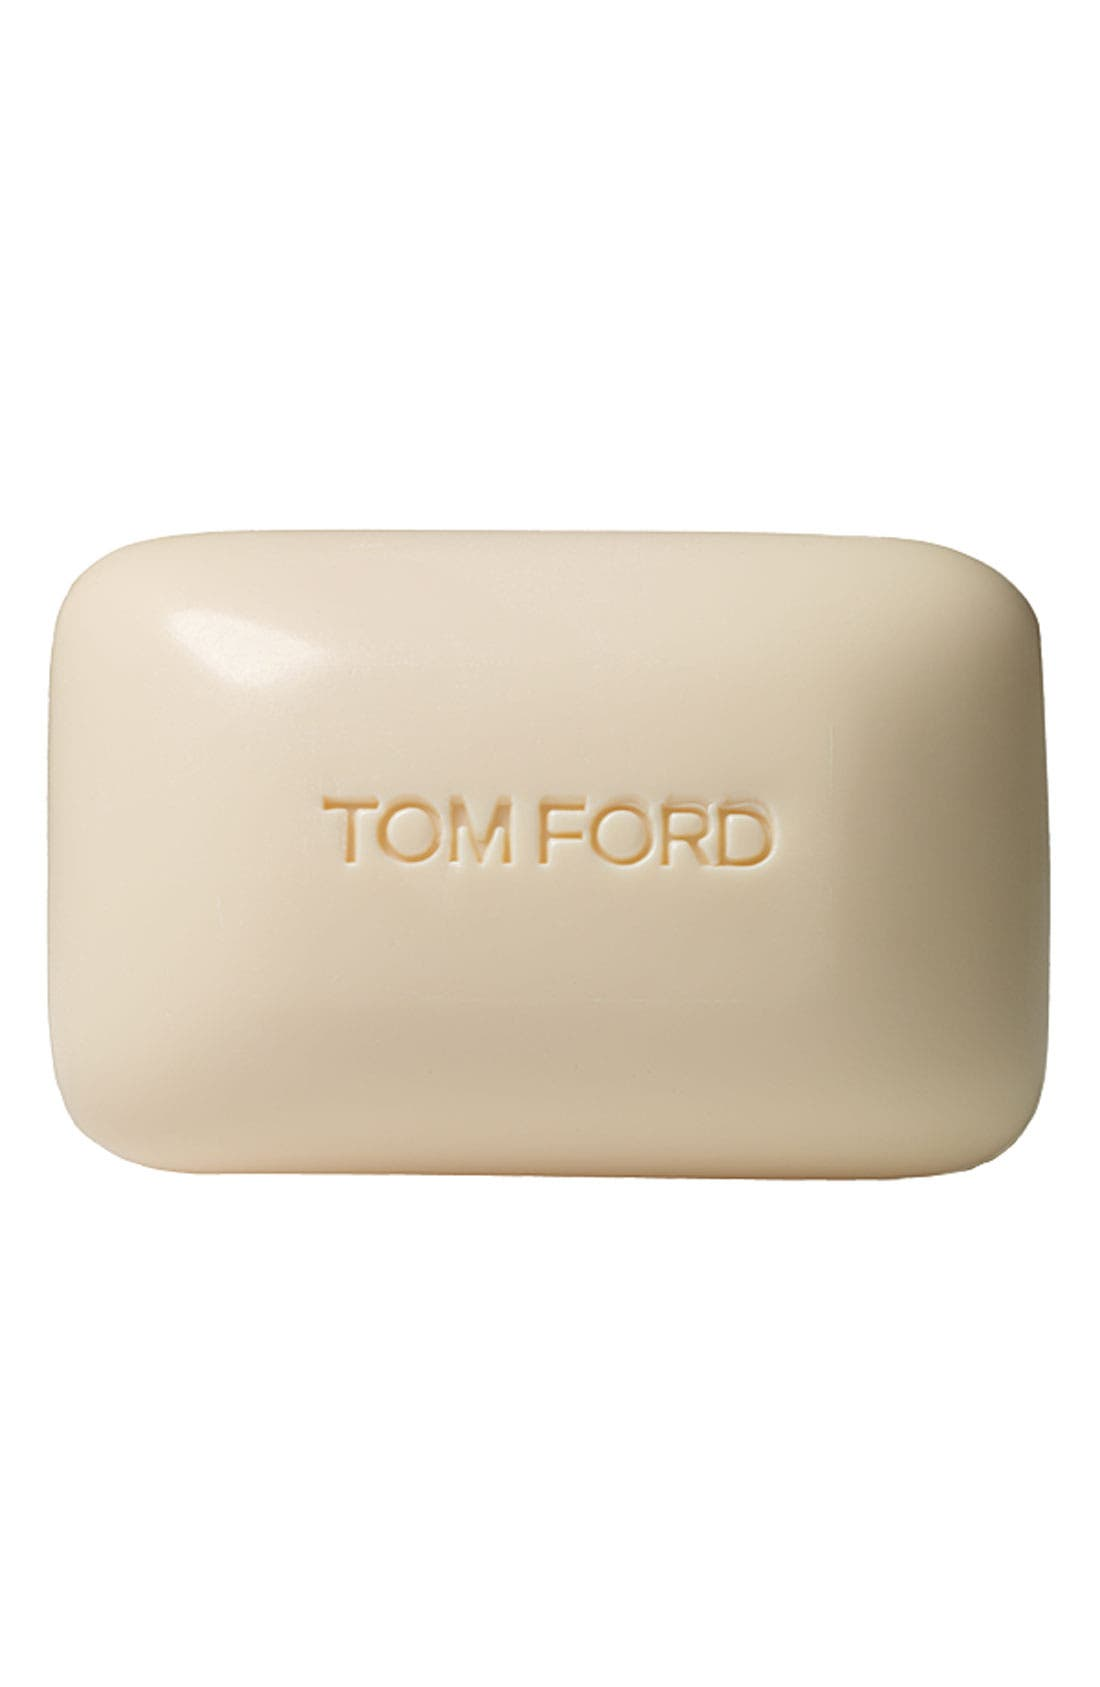 Tom Ford Private Blend Neroli Portofino Bath Soap